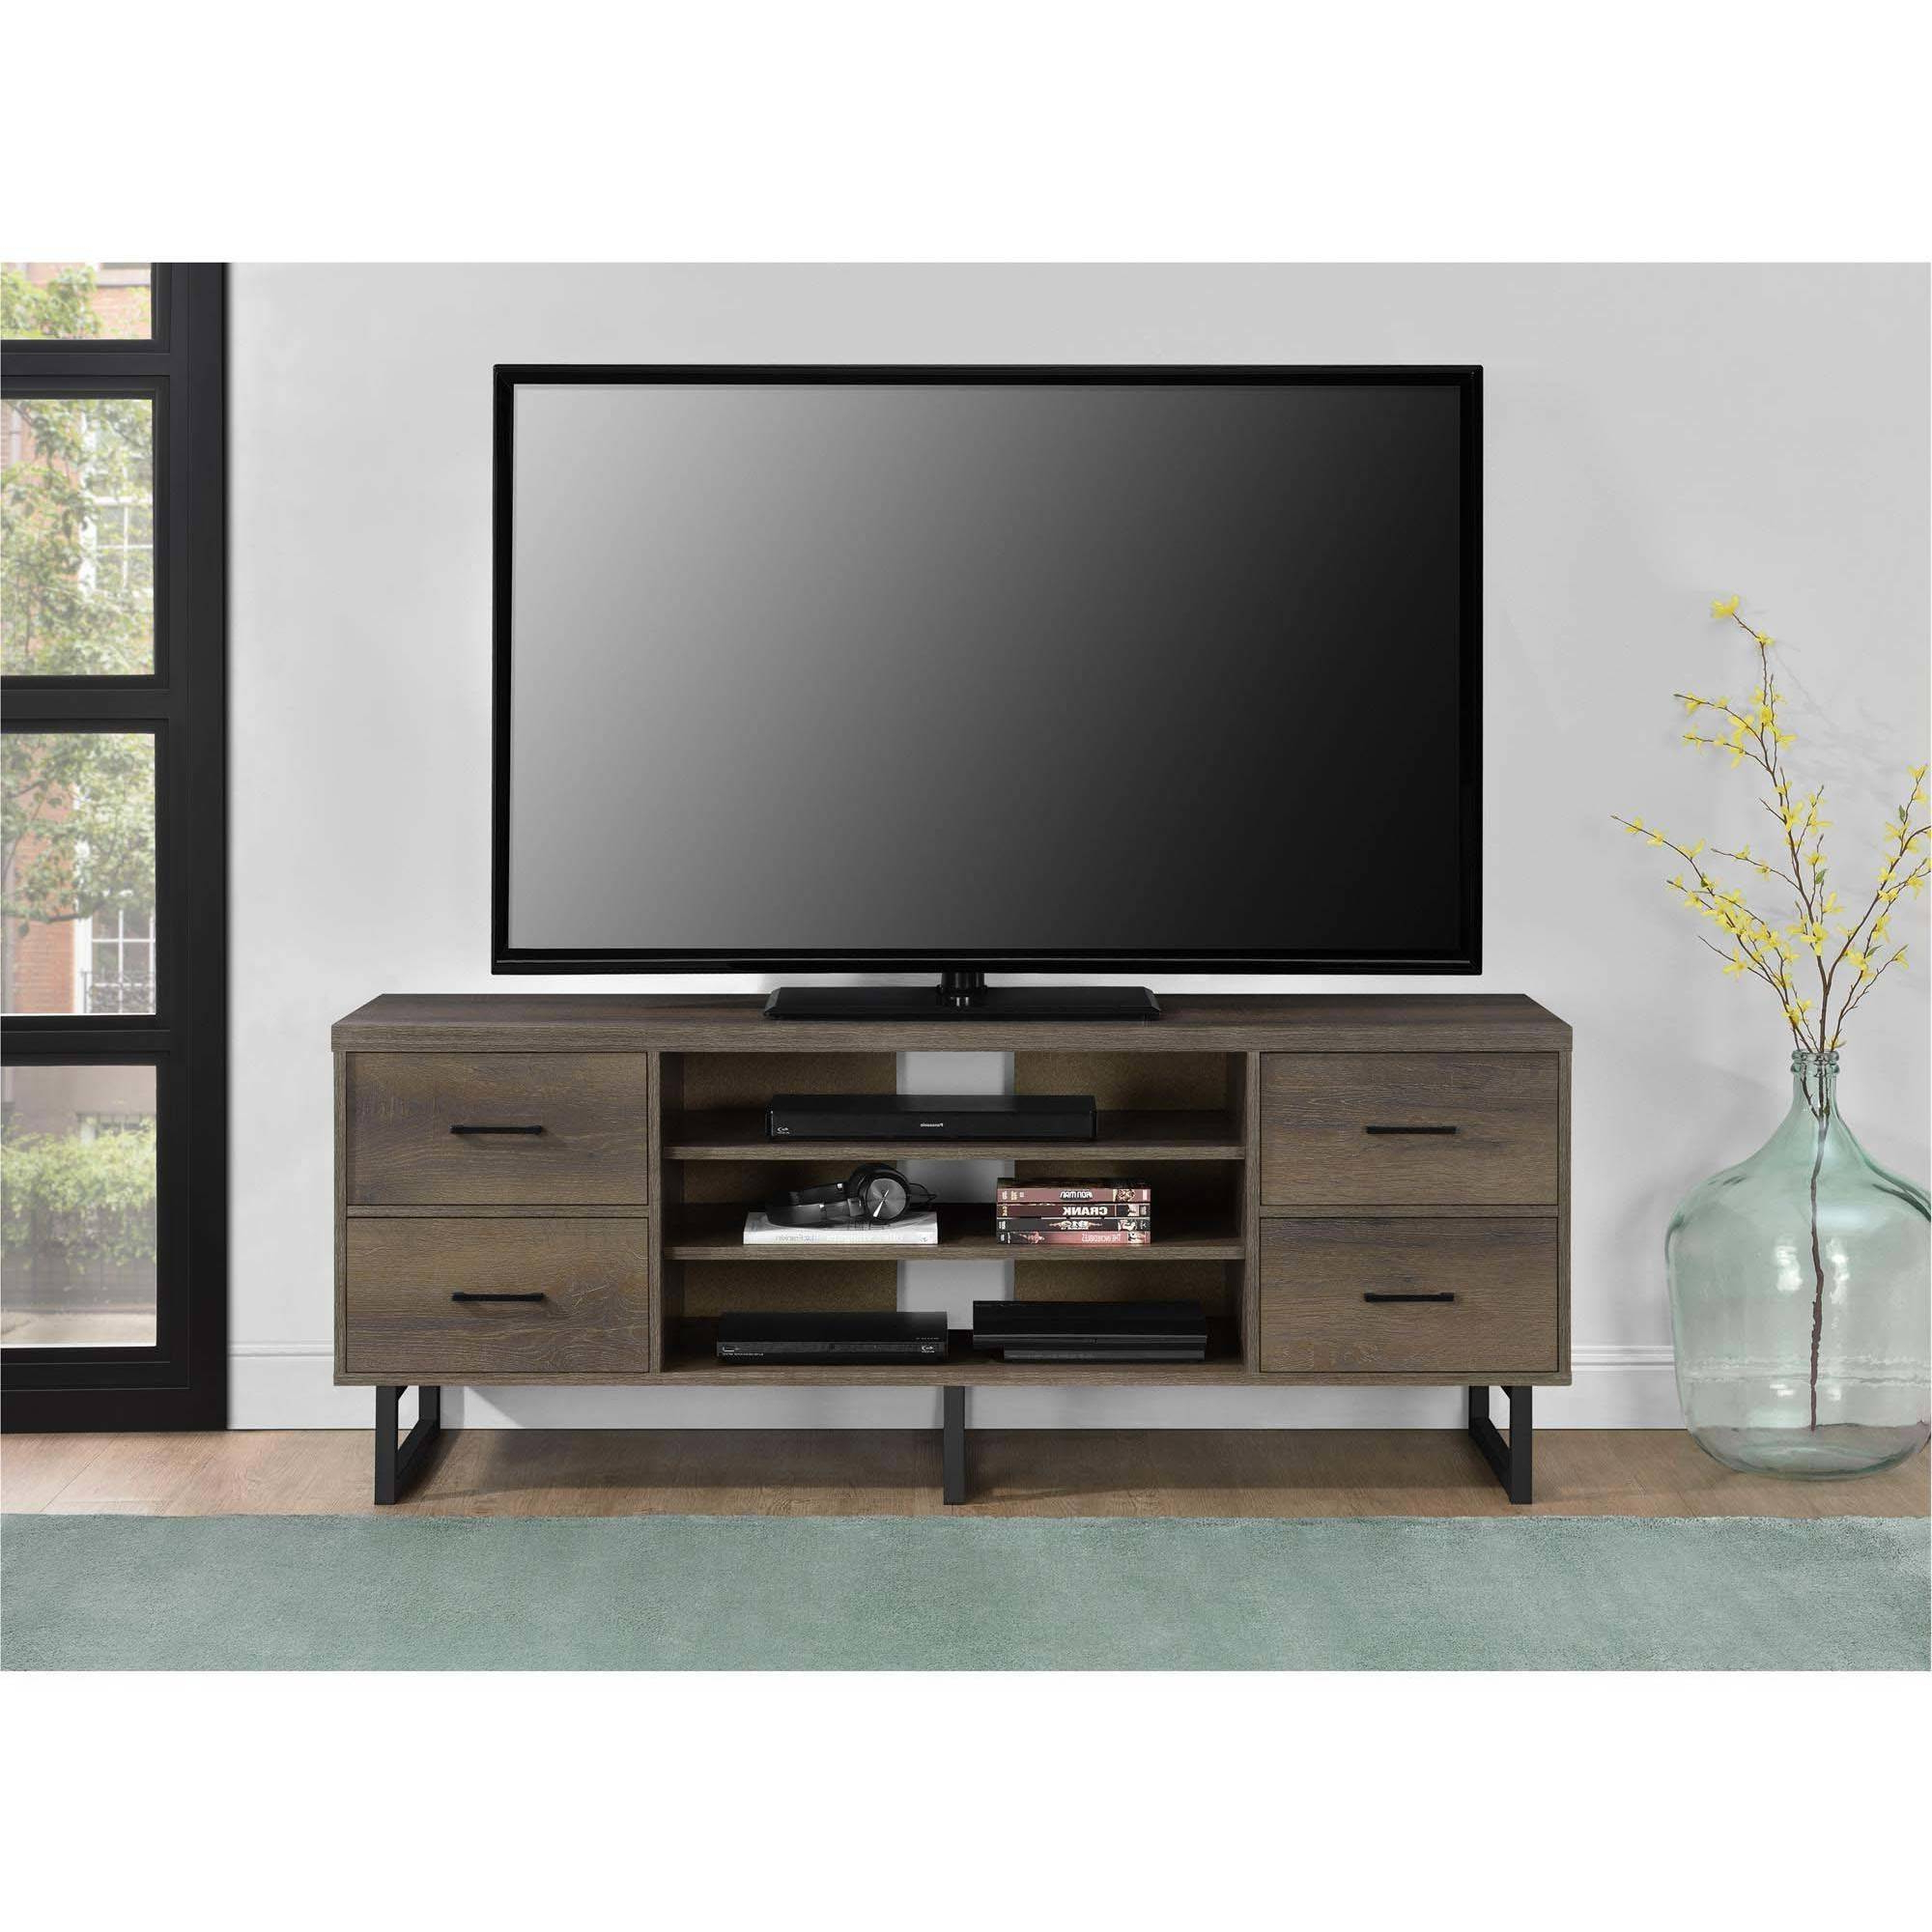 Ameriwood Home Candon Tv Stand With Bins For Tvs Up To 60 In Popular Bromley Extra Wide Oak Tv Stands (View 9 of 25)